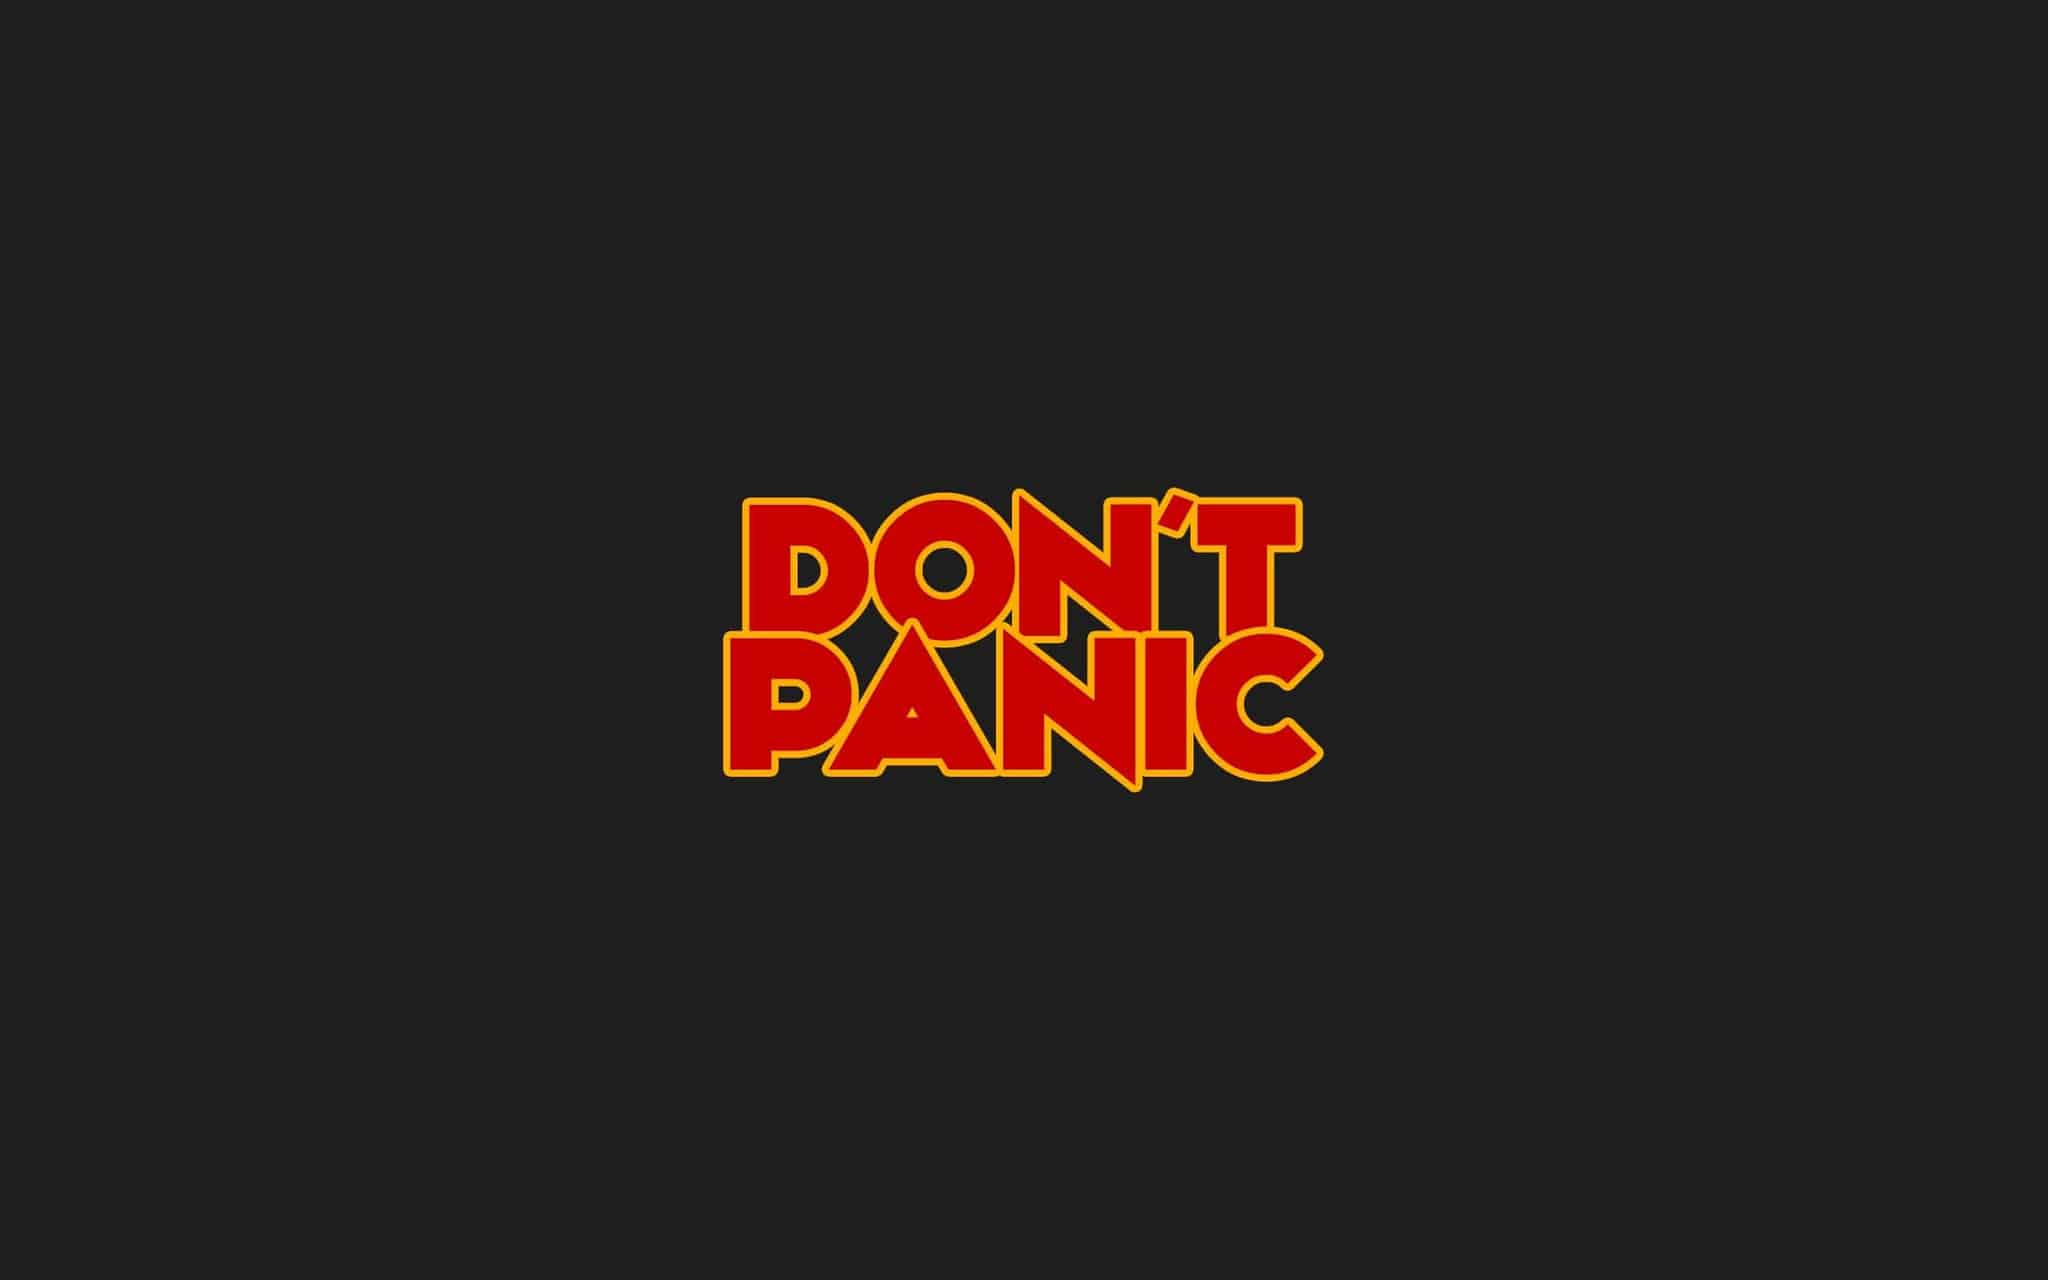 the-hitchhiker's-guide-to-the-galaxy-wallpapers-30031-4864154